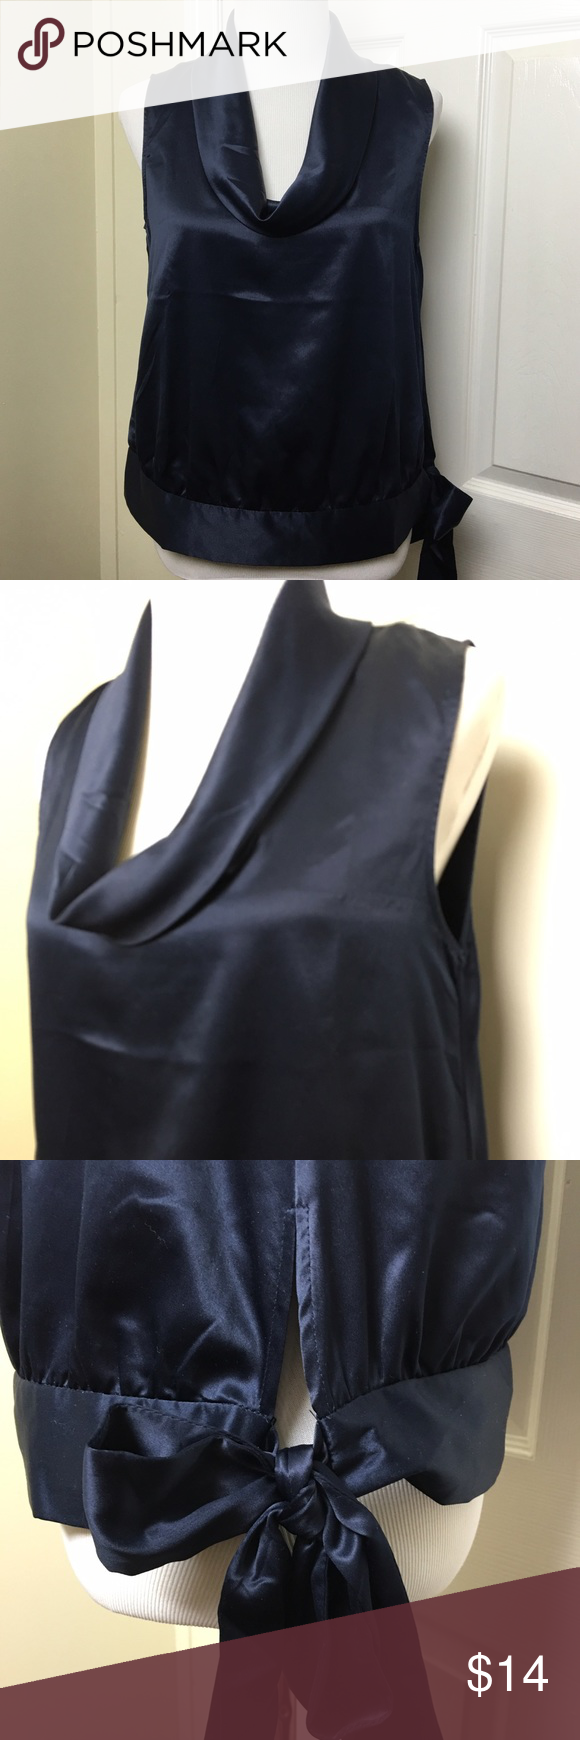 Banana Republic Navy Blue Top Banana Republic sleeveless top featuring draped cowl neck. Super soft fabric. Banded waist with self tie on side. Banana Republic Tops